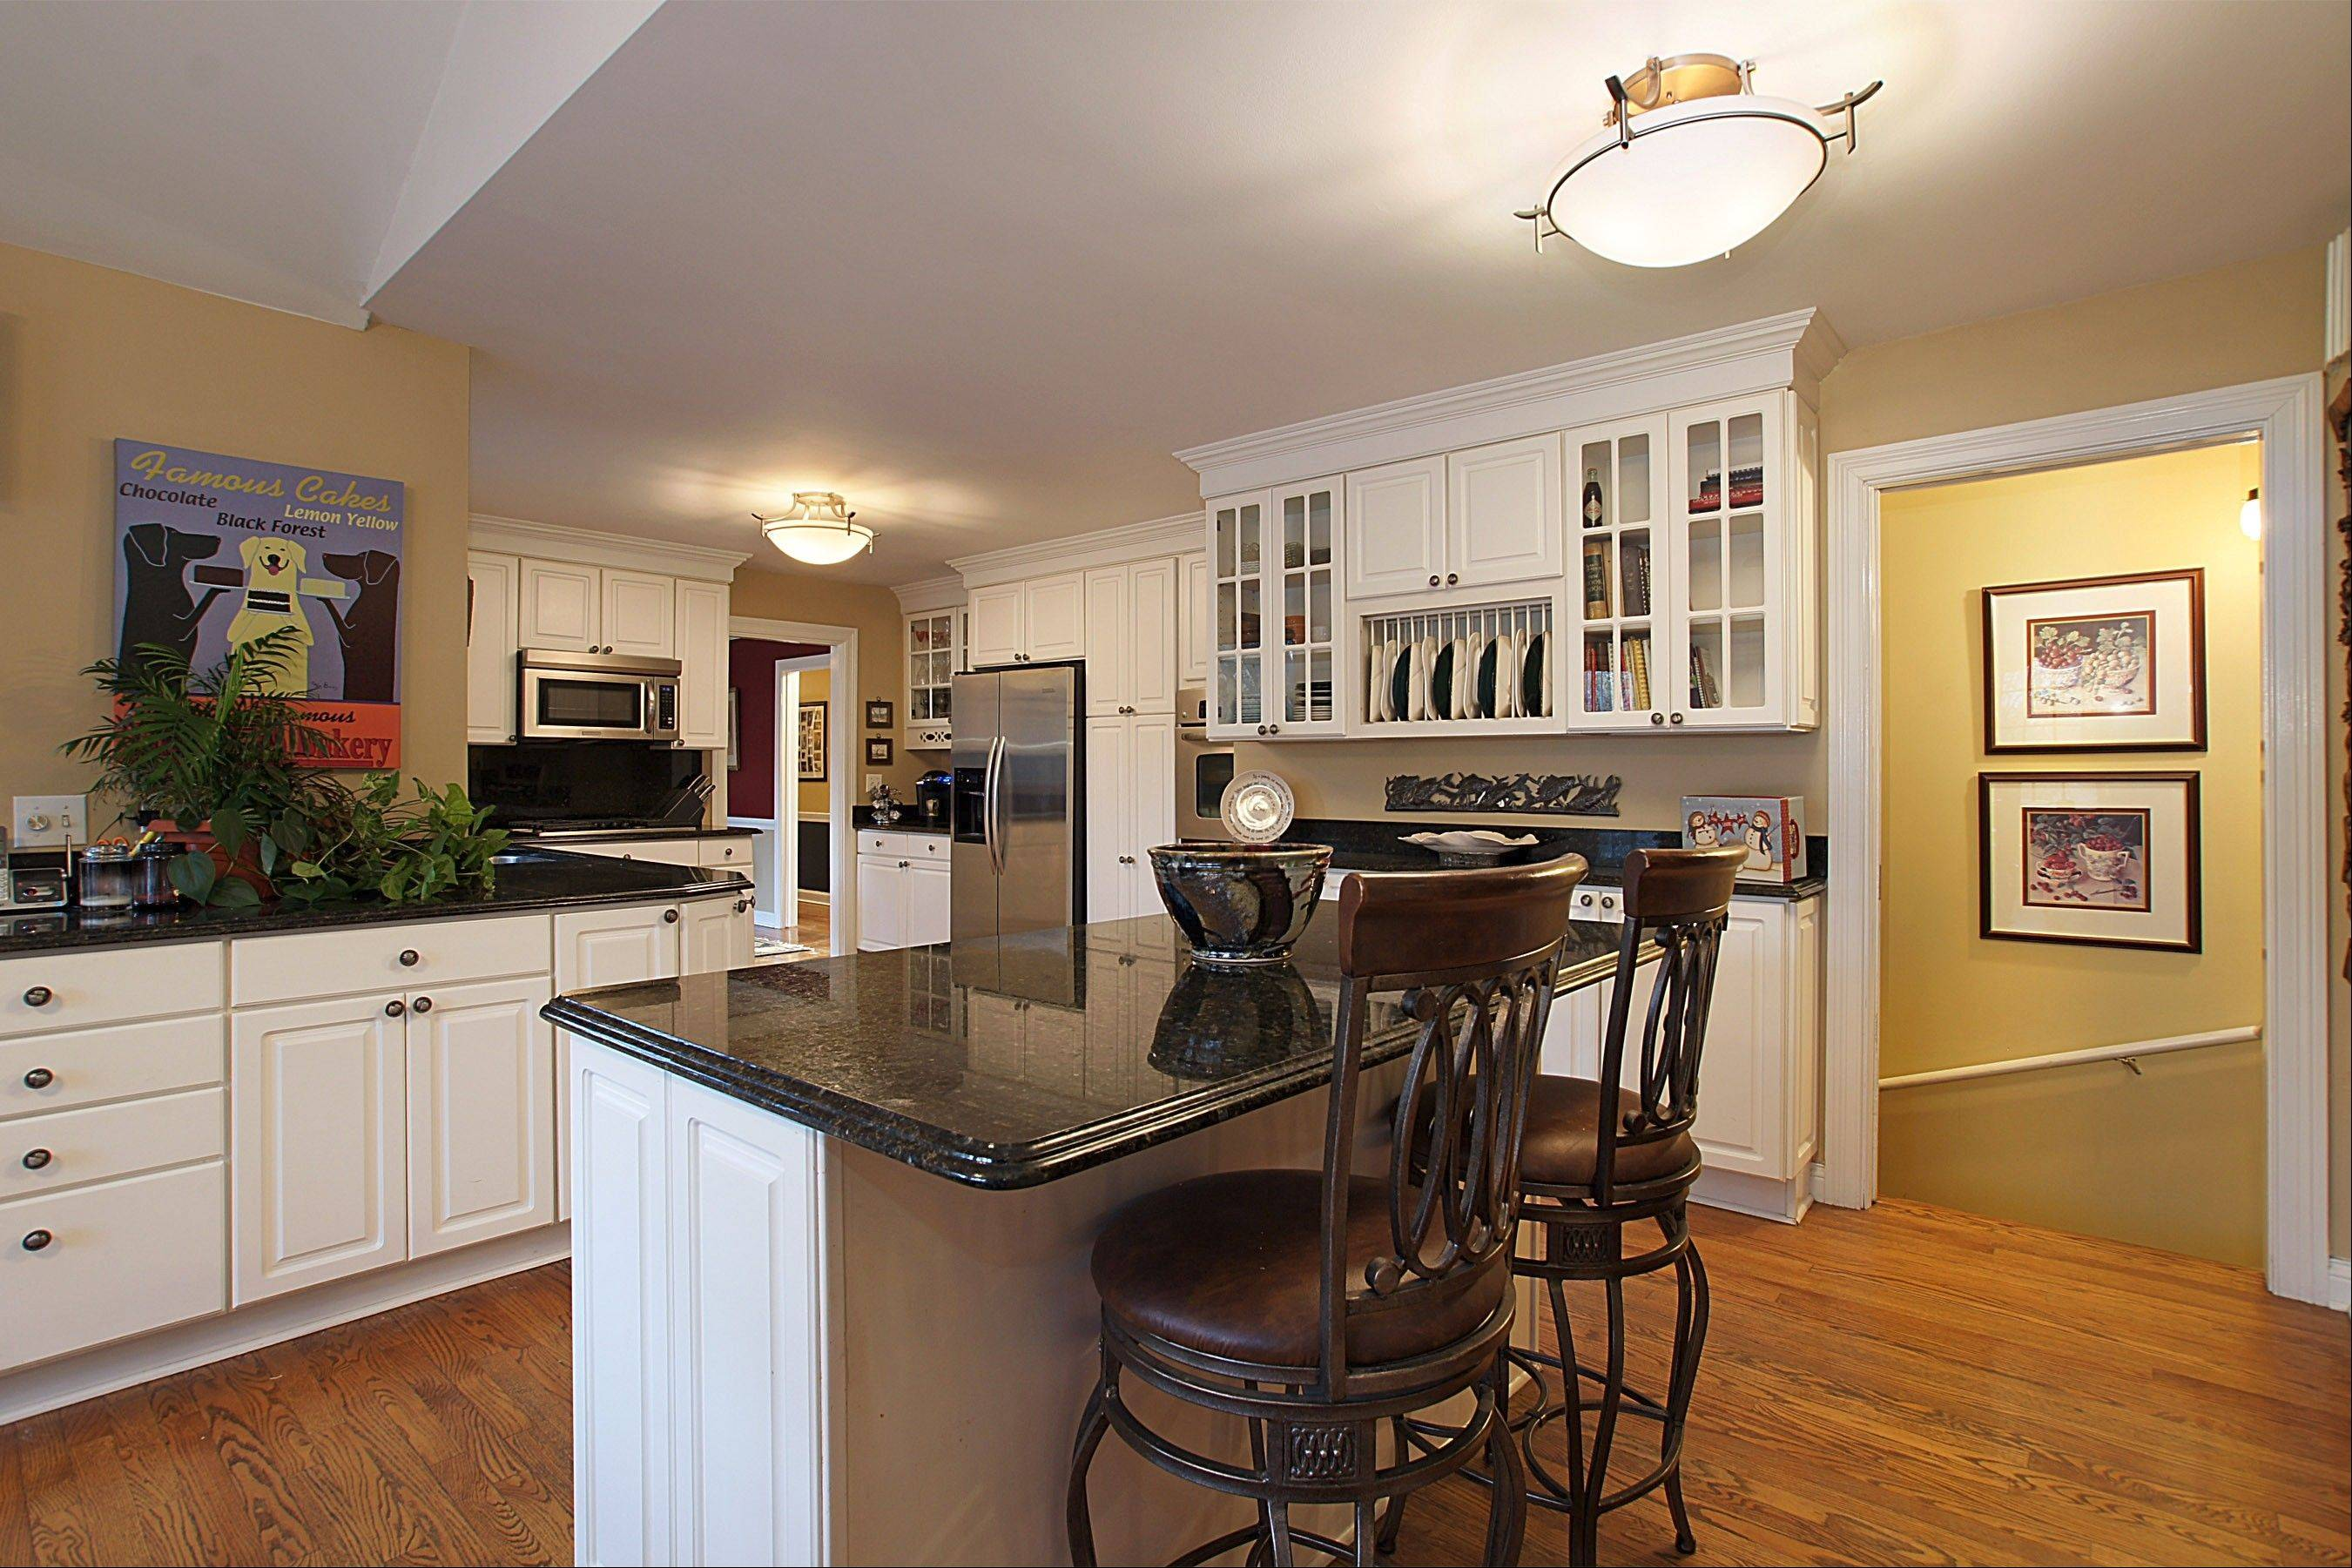 The kitchen has granite countertops and is open to the great room.